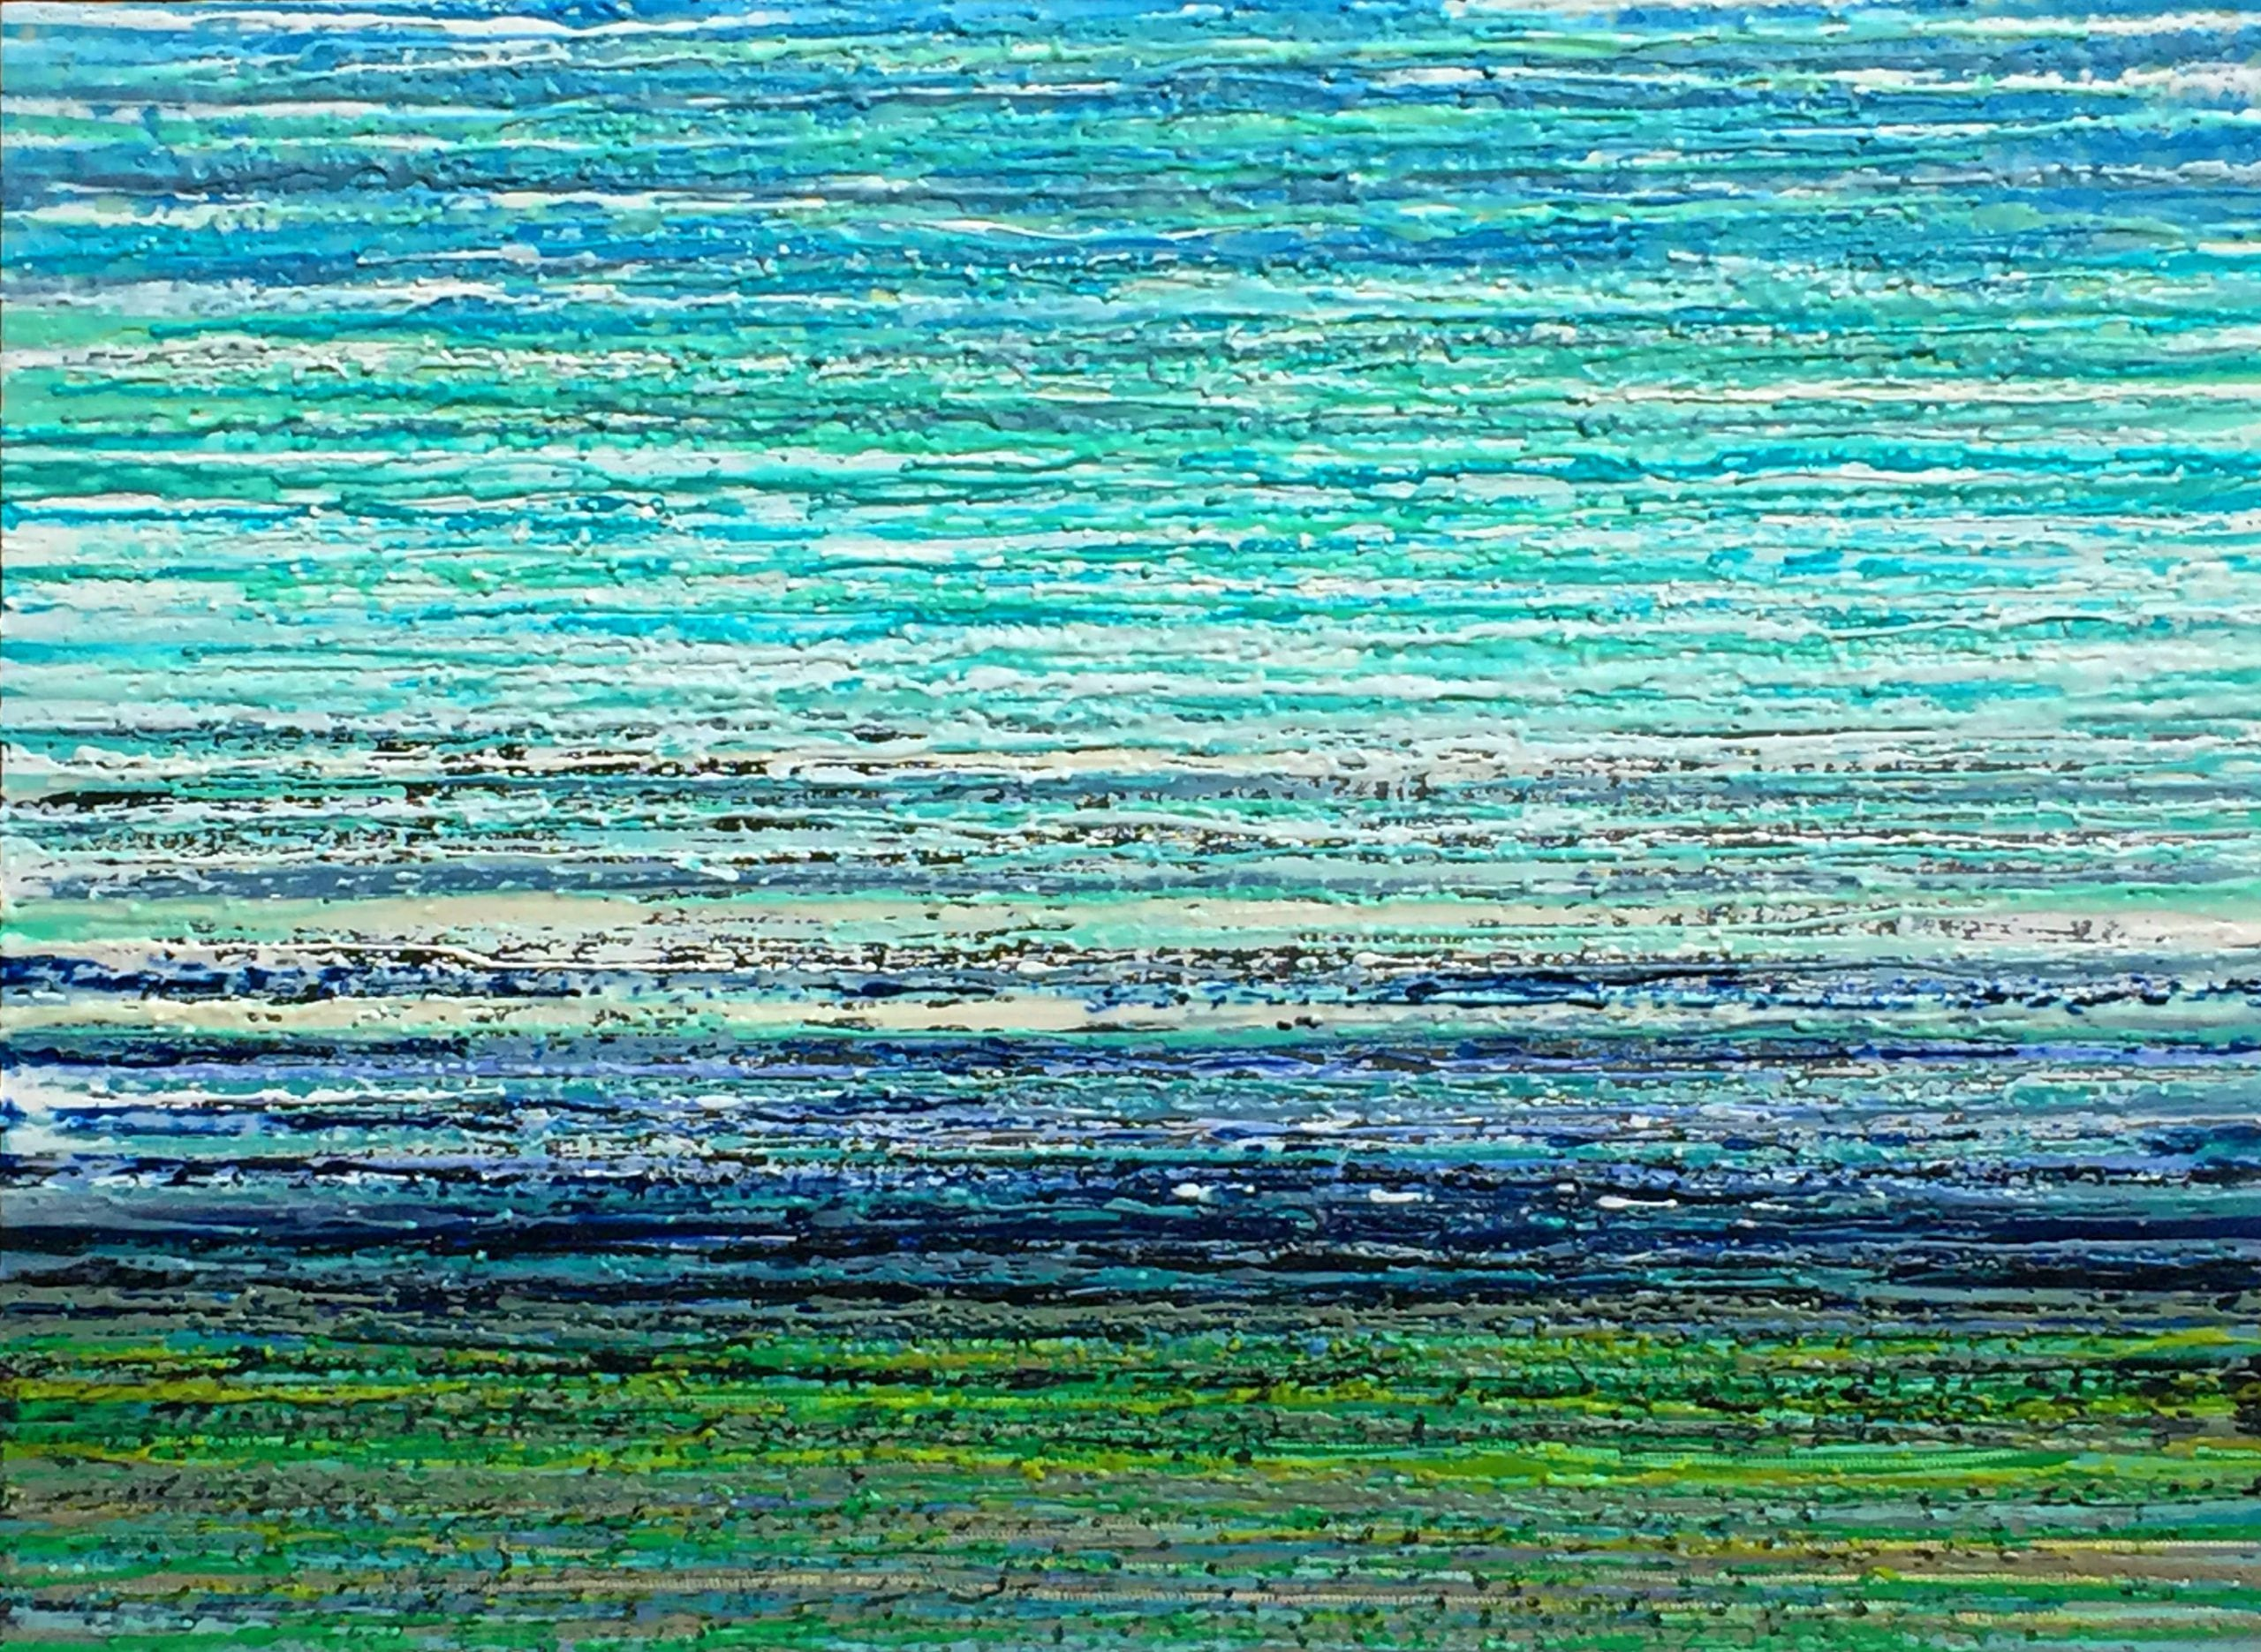 Windermere, mixed media encaustic painting by Marie-Danielle Leblanc | Effusion Art Gallery + Cast Glass Studio, Invermere BC